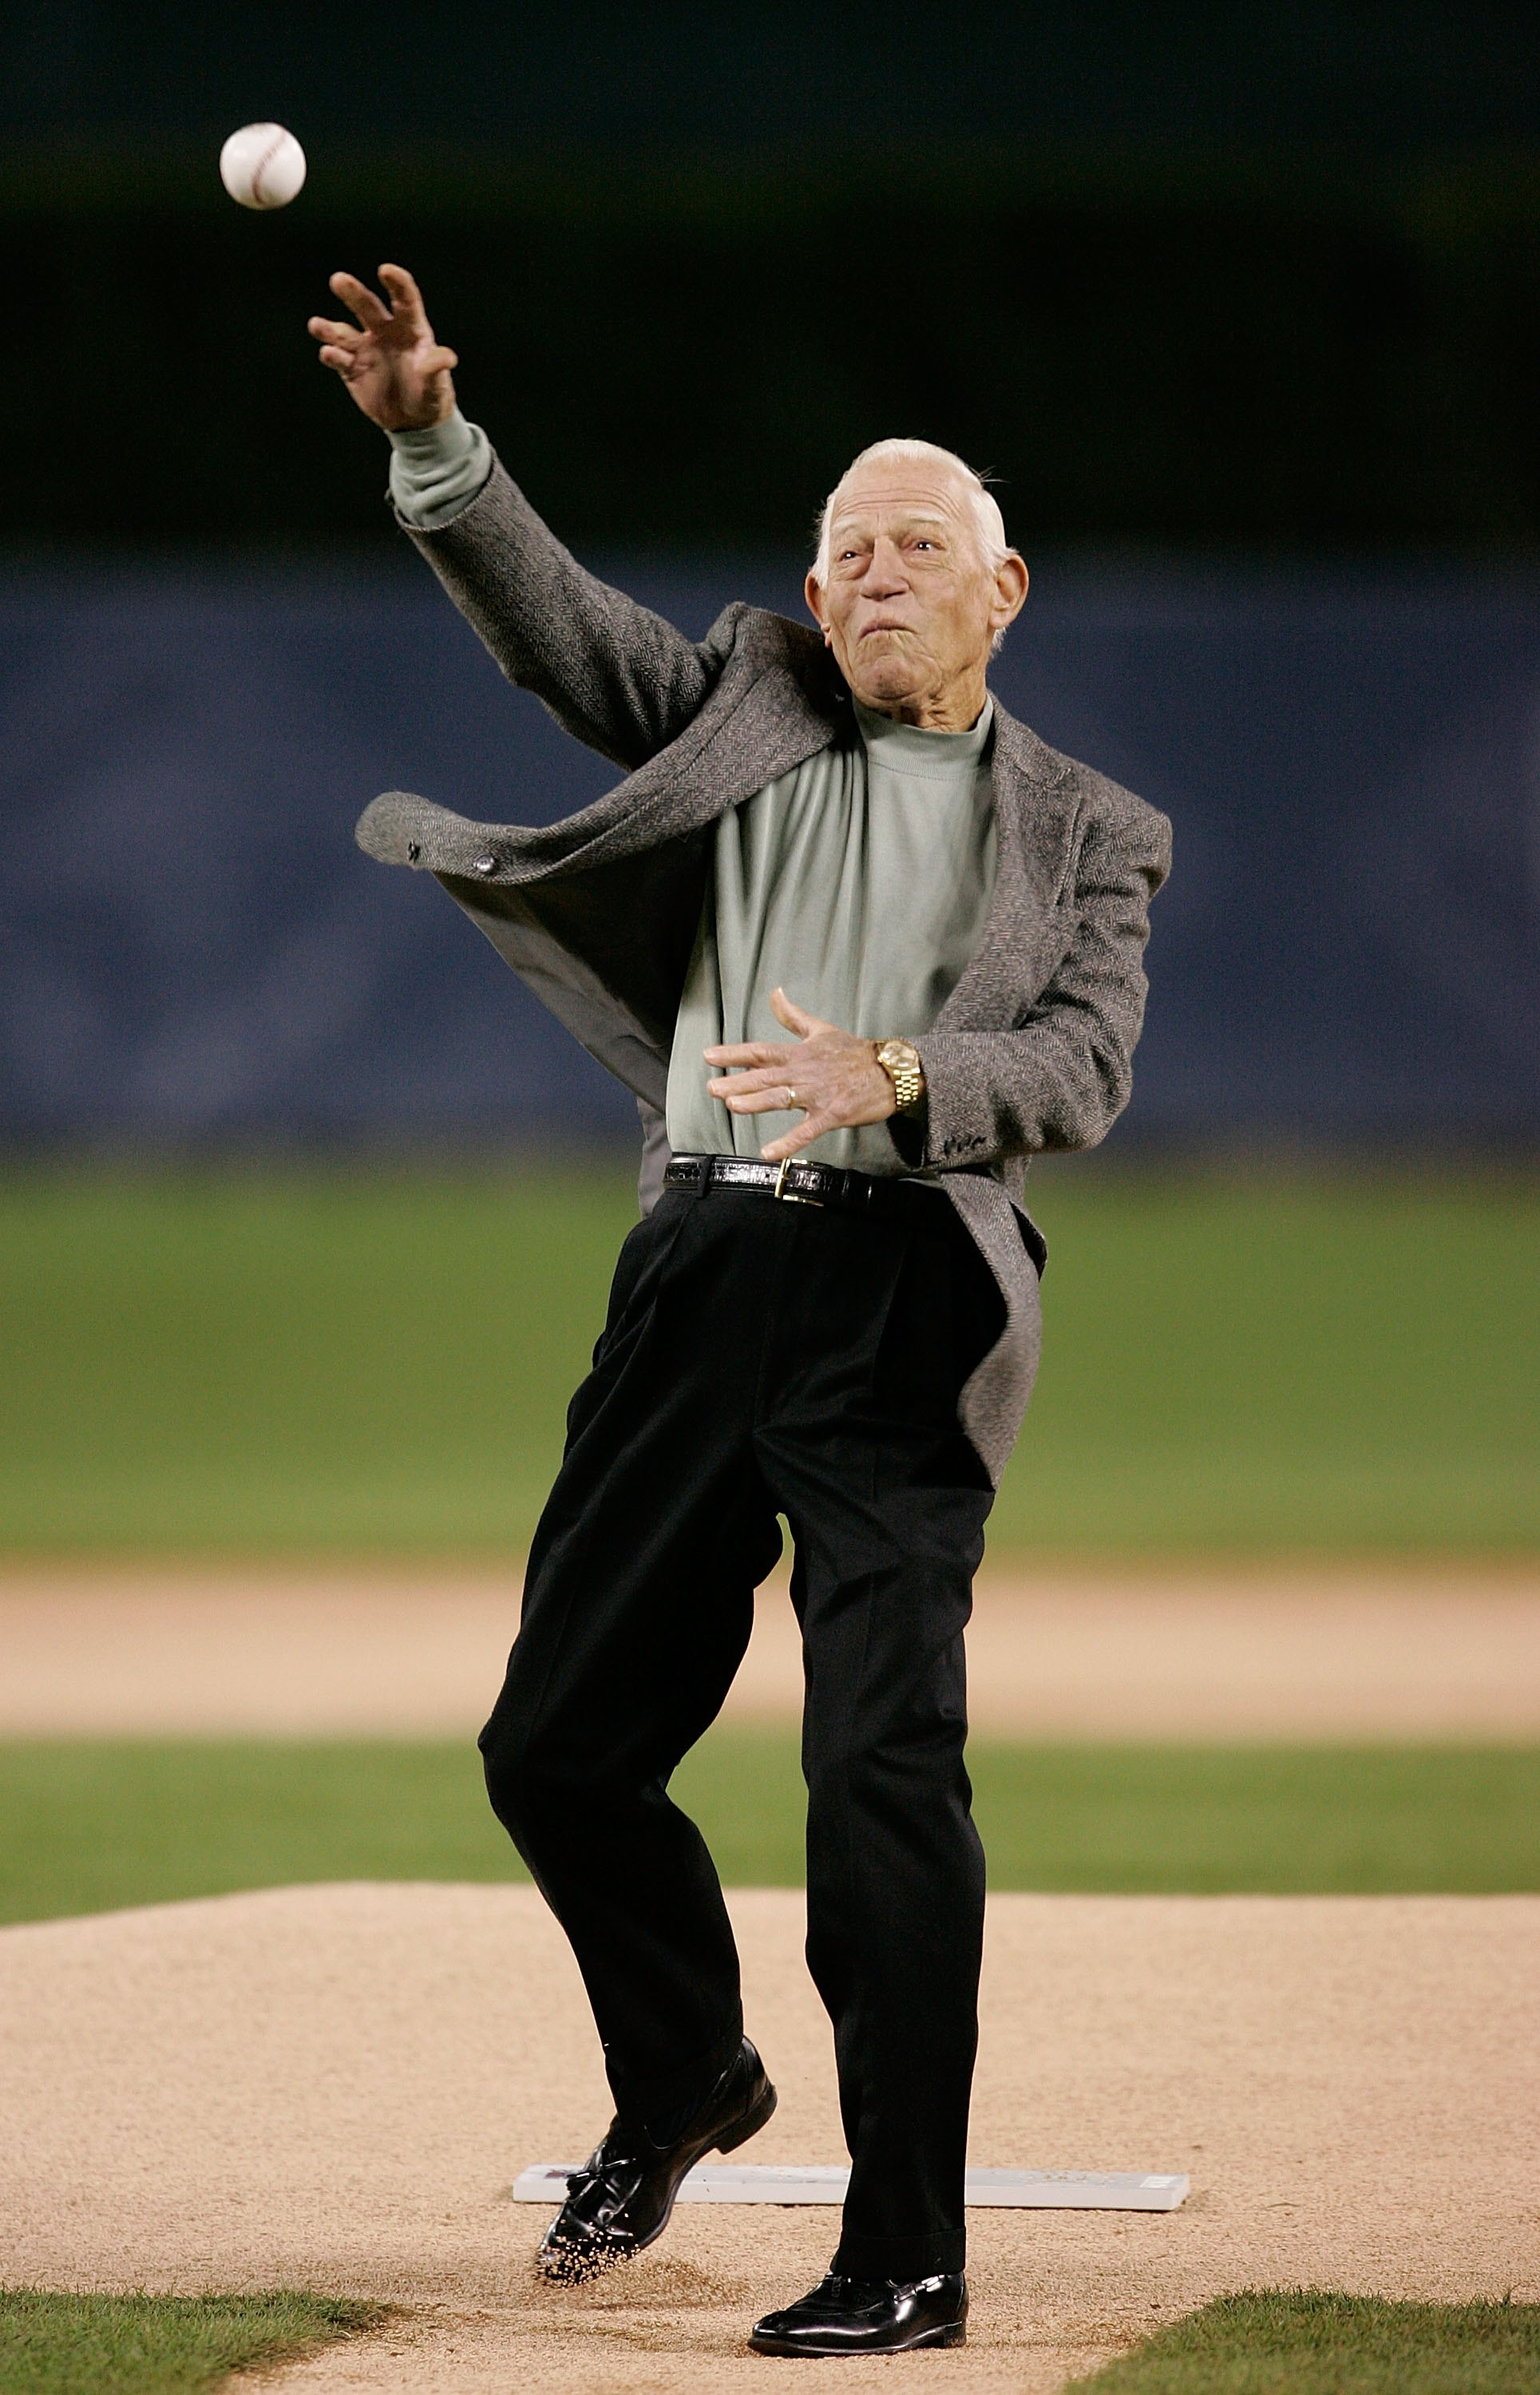 DETROIT - OCTOBER 22:  Former manager of the Detroit Tigers Sparky Anderson throws out the first pitch before the Tigers take on the St. Louis Cardinals during Game Two of 2006 World Series October 22, 2006 at Comerica Park in Detroit, Michigan.  (Photo b